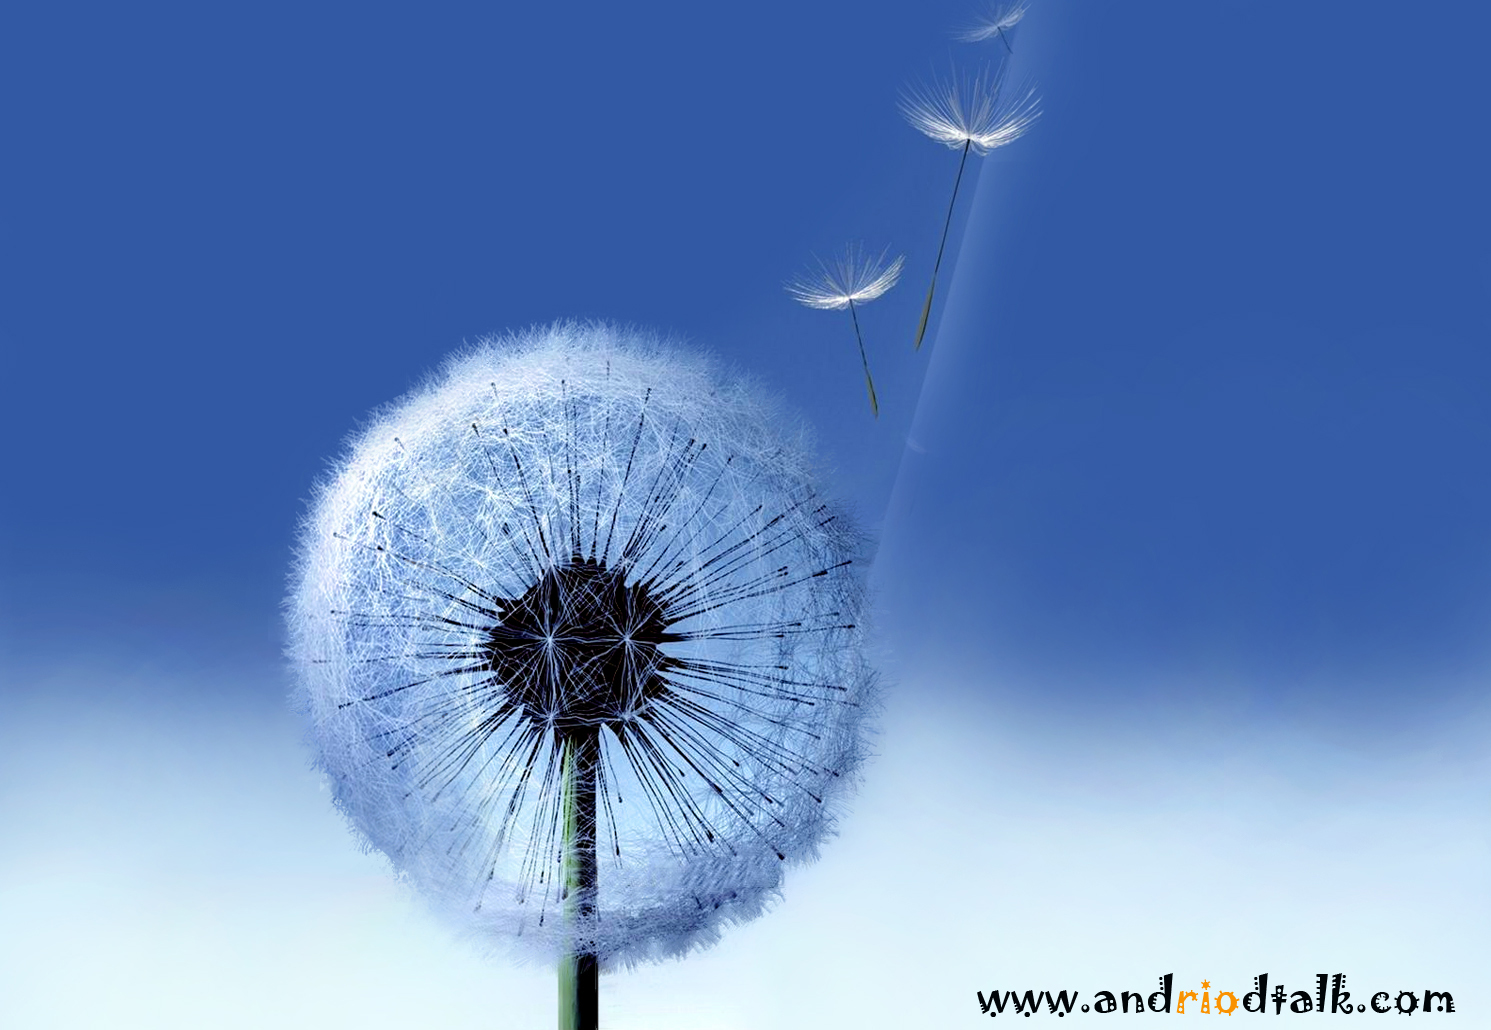 http://3.bp.blogspot.com/--pUhFvU4eiw/UBtjZGRF2mI/AAAAAAAAJjg/Z9Dg6HEaolM/s1600/HD-%20galaxy-s3-Dandelion%20wallpaper%20for%20PC%20desktop%20wallpaper.jpg